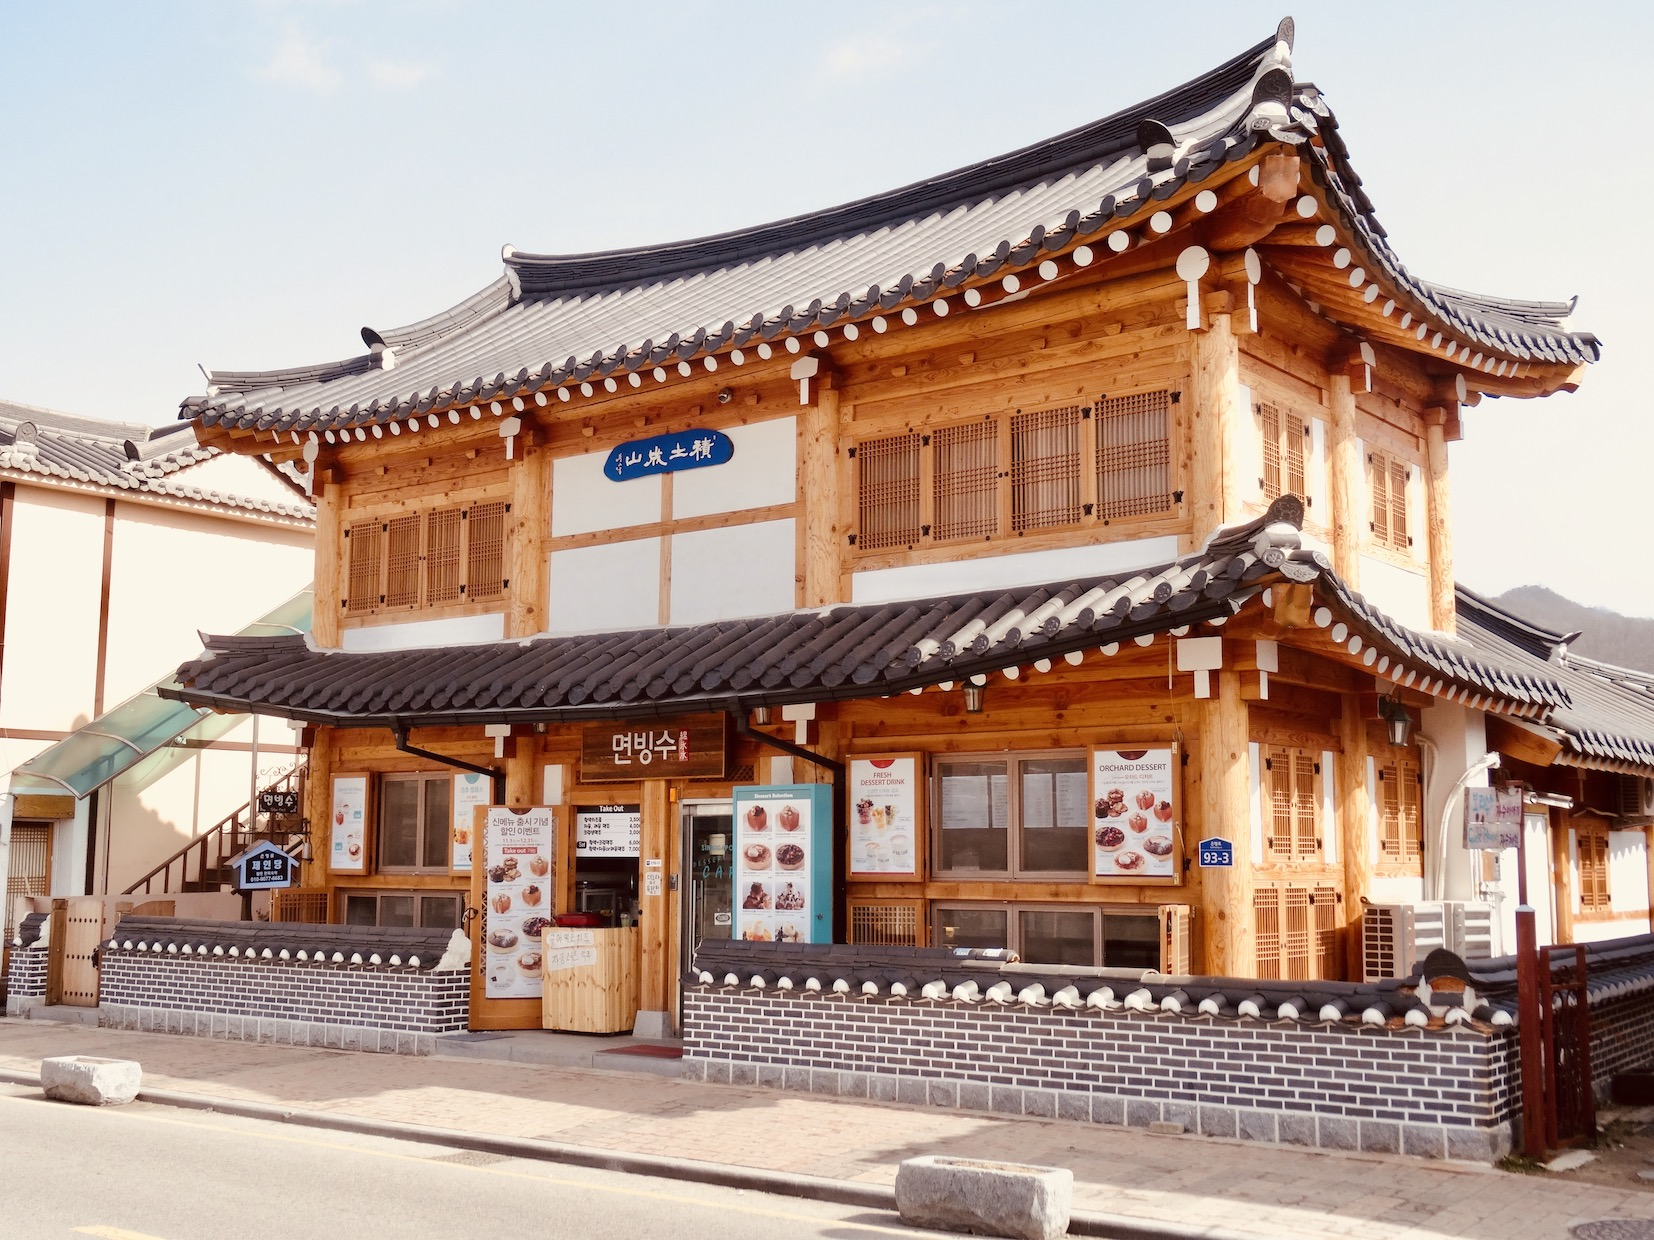 Hanok dessert restaurant Jeonju South Korea.